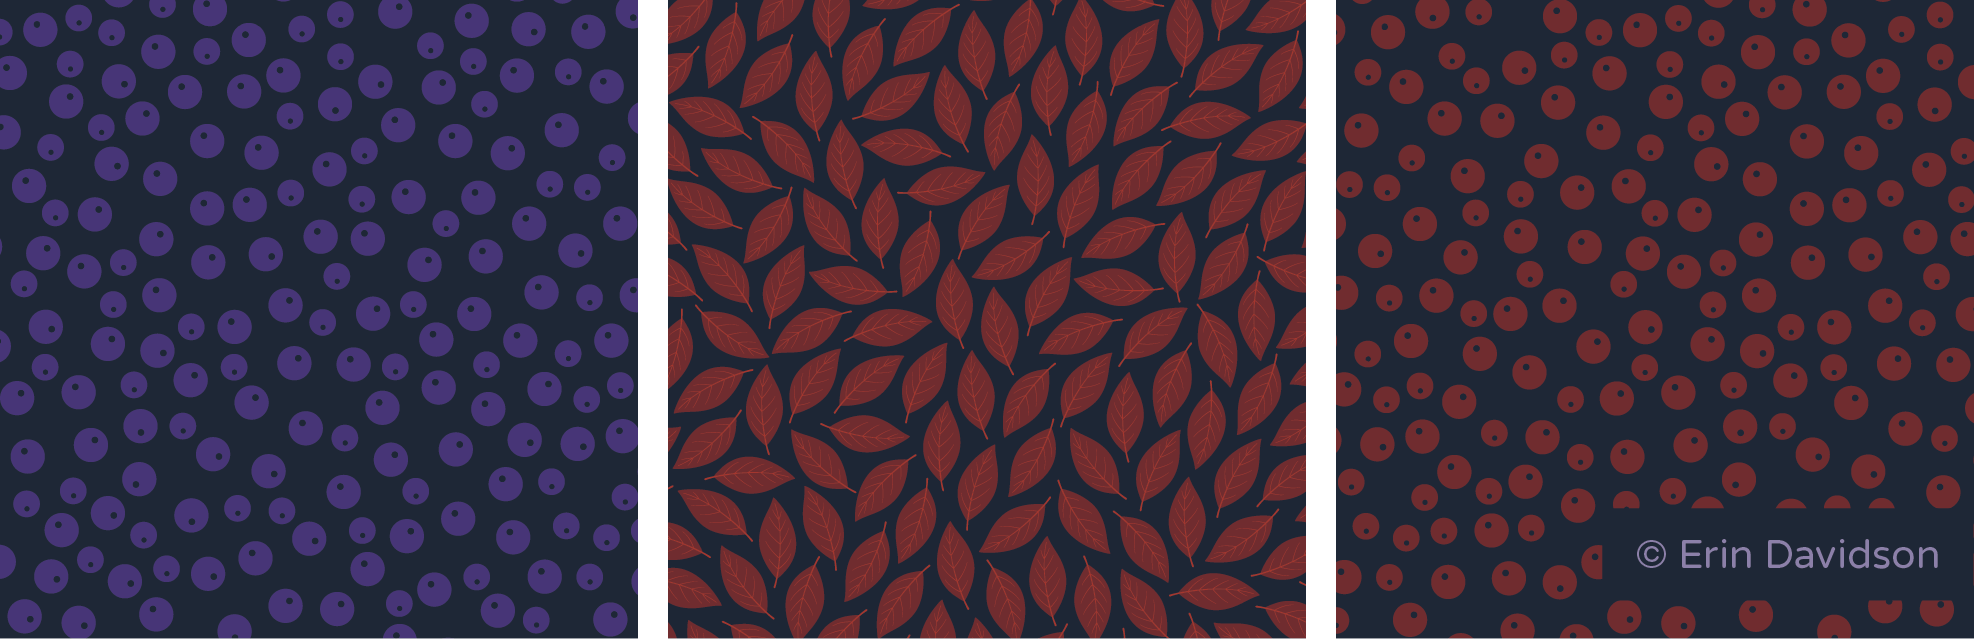 3 blender prints cropped side by side. Patterns are densely placed. 1st pattern features dark purple berries. 2nd pattern features red plant leaves. 3rd pattern features red berries.